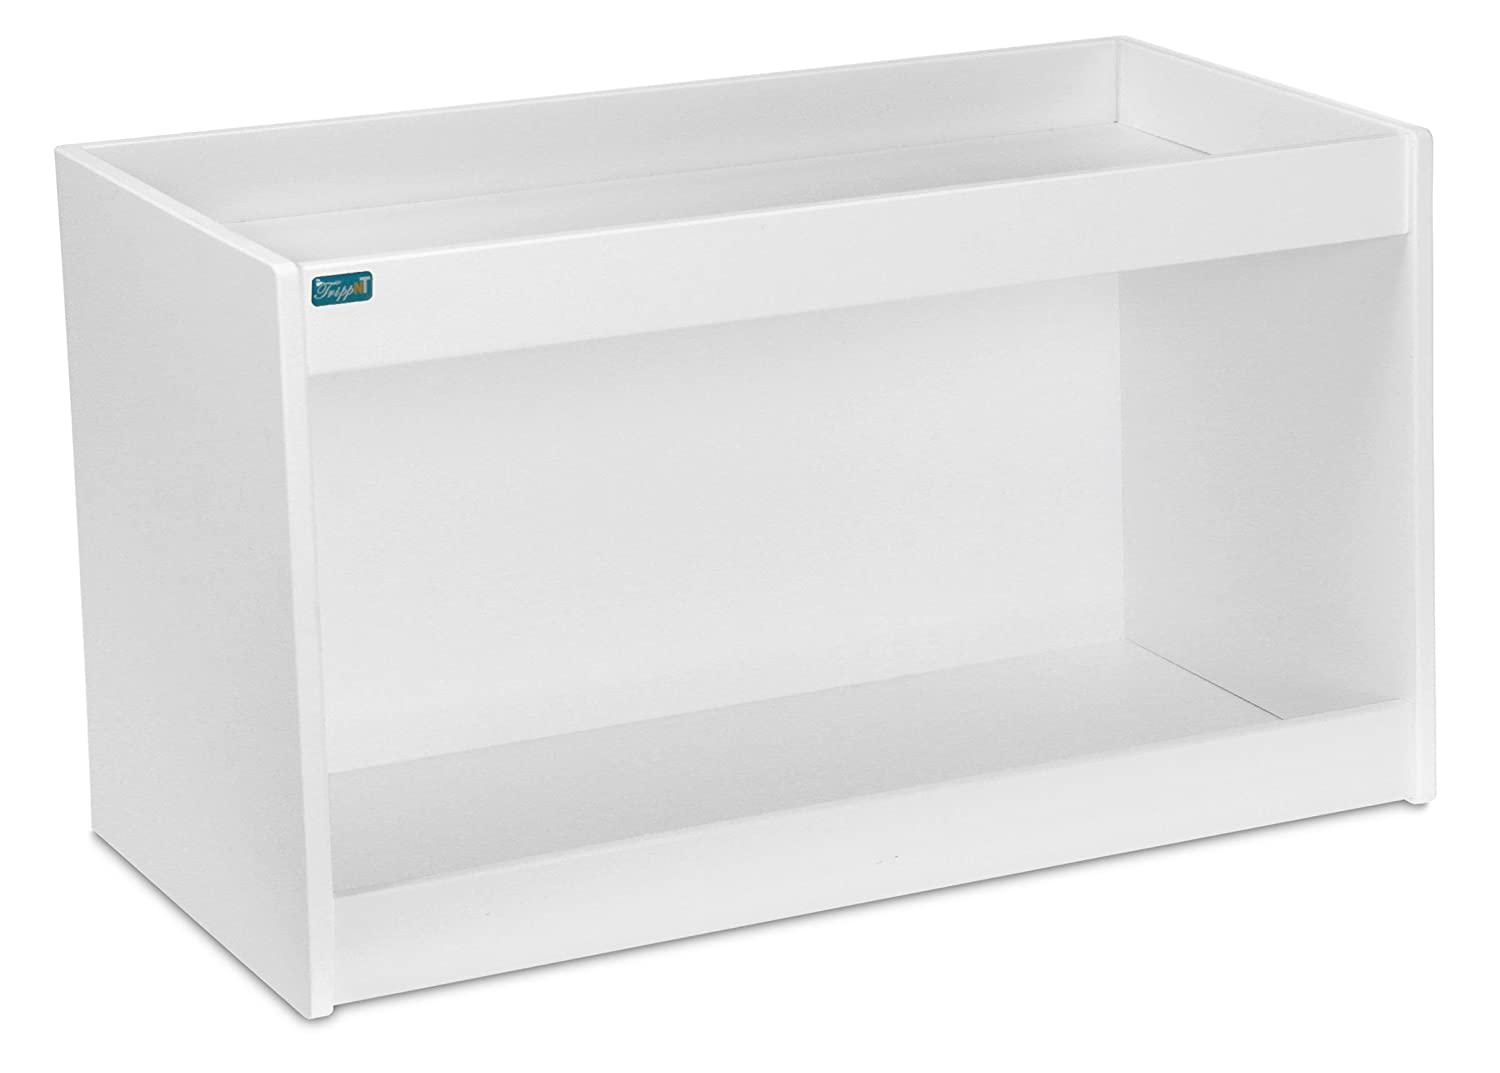 24 Width x 12 Height x 7 Depth TrippNT 50089 PVC Straight Double Safety Shelves White